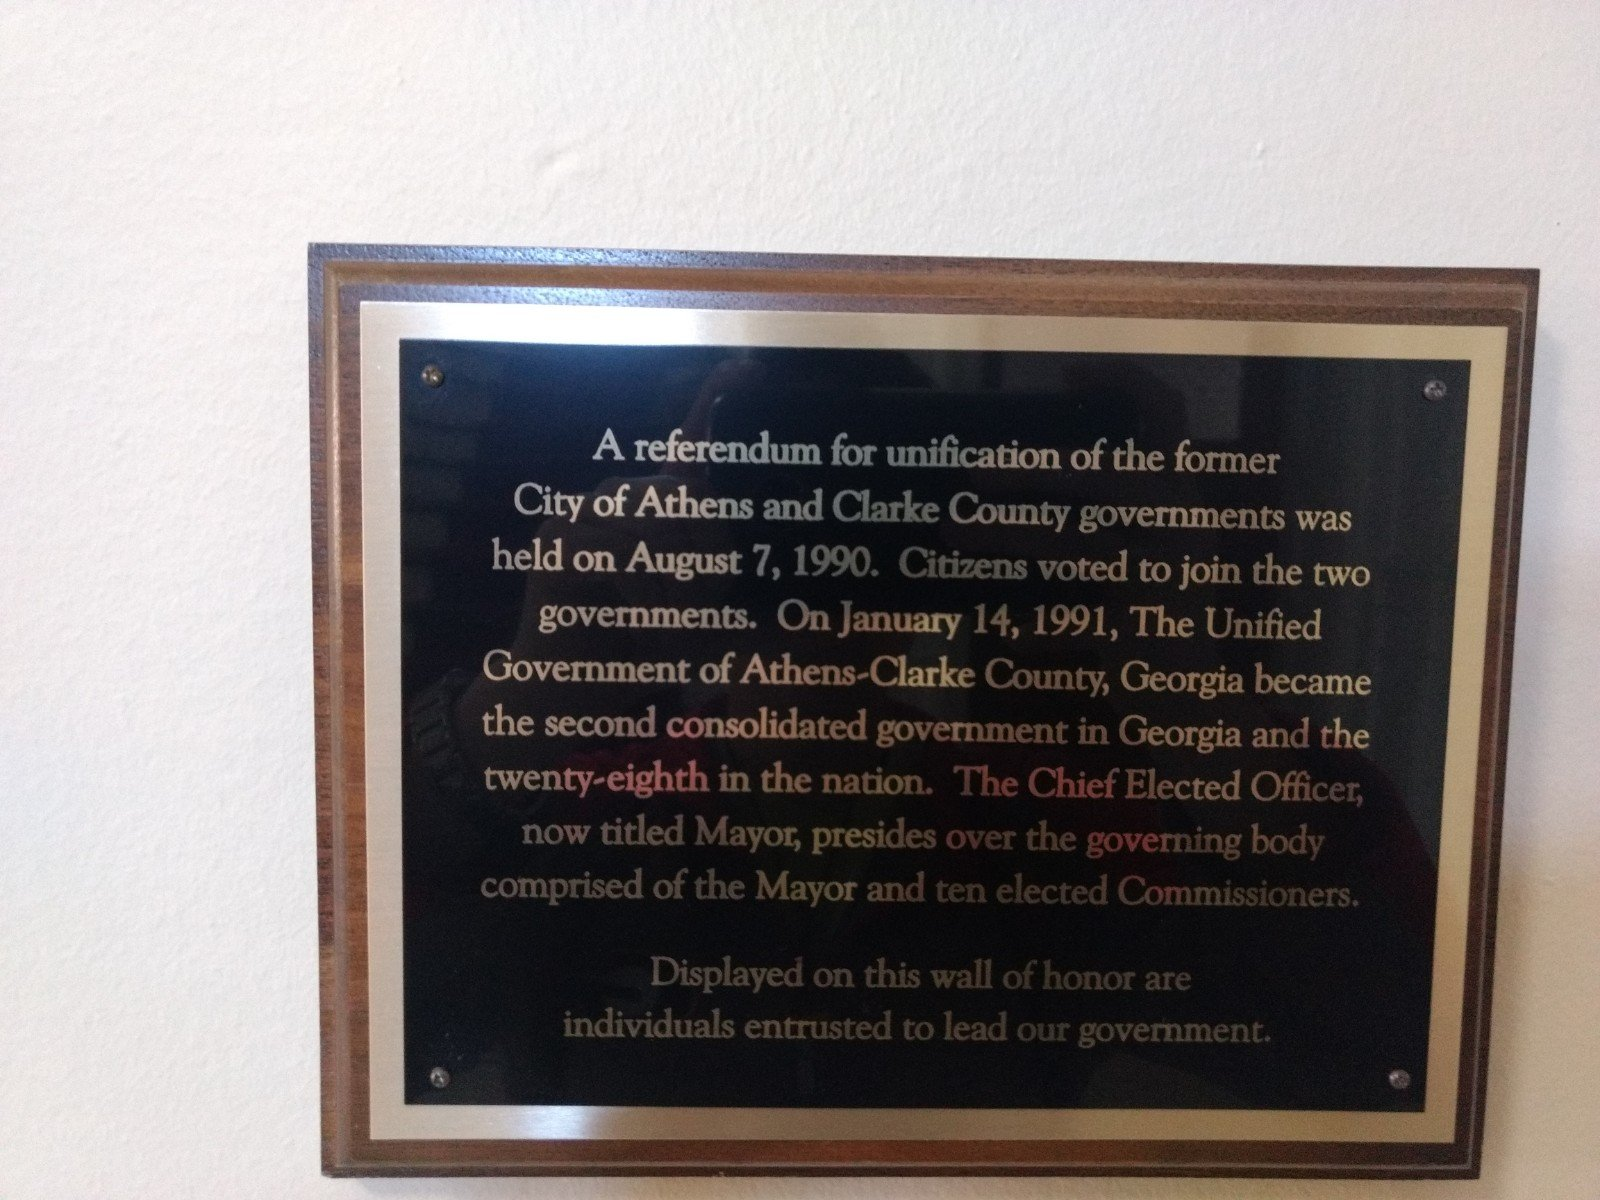 This plaque commemorates the unification of the city of Athens and Clarke County